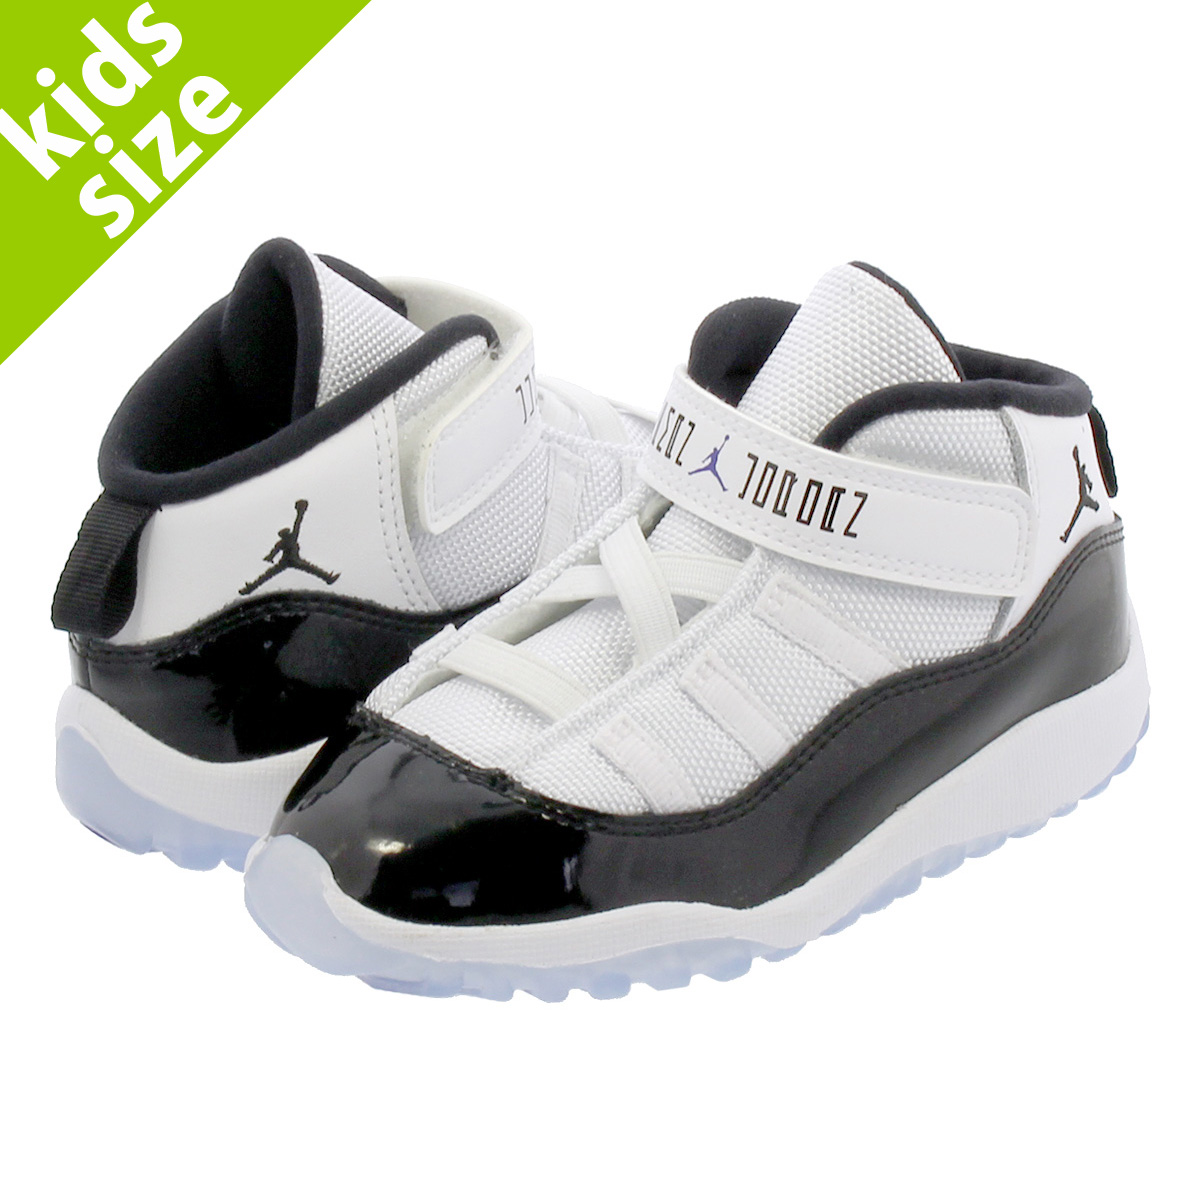 【ベビーサイズ】【8.0~16.0cm】 NIKE AIR JORDAN 11 RETRO BT【CONCORD】 ナイキ エア ジョーダン 11 レトロ BT WHITE/CONCORD/BLACK 378040-100